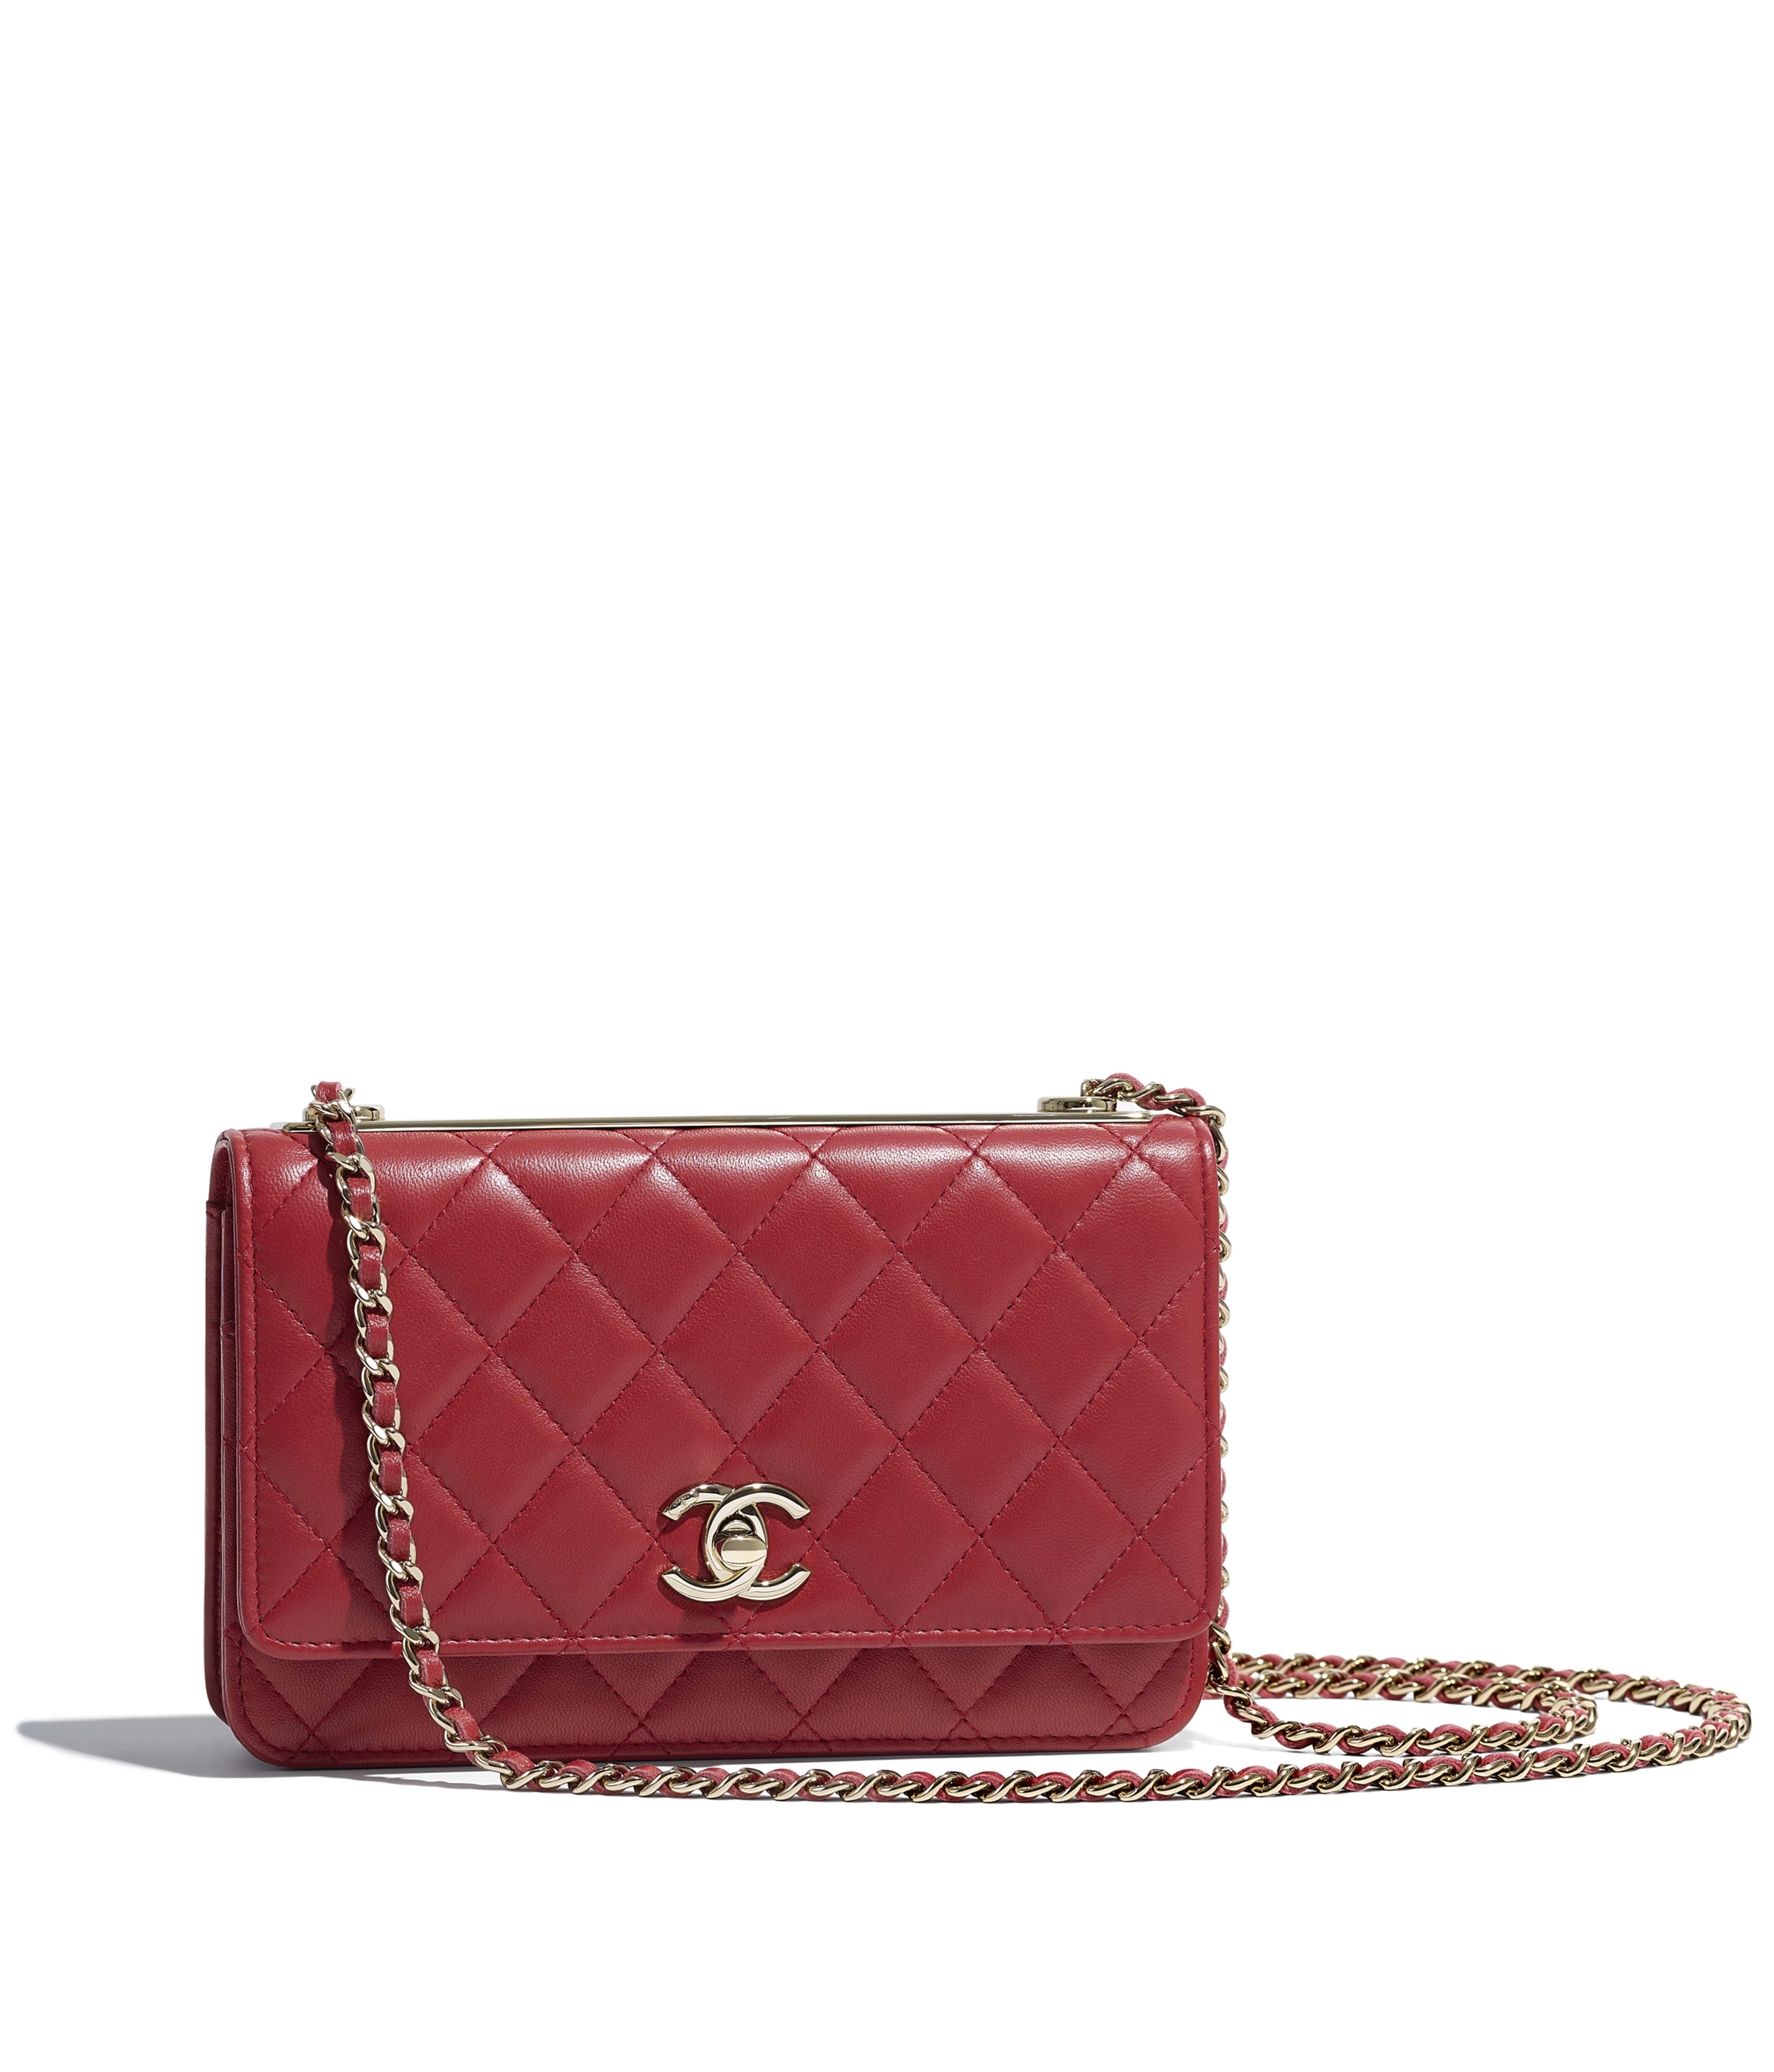 6922734e210 Wallet on Chain Lambskin   Gold-Tone Metal, Red Ref. A80982Y040595B455